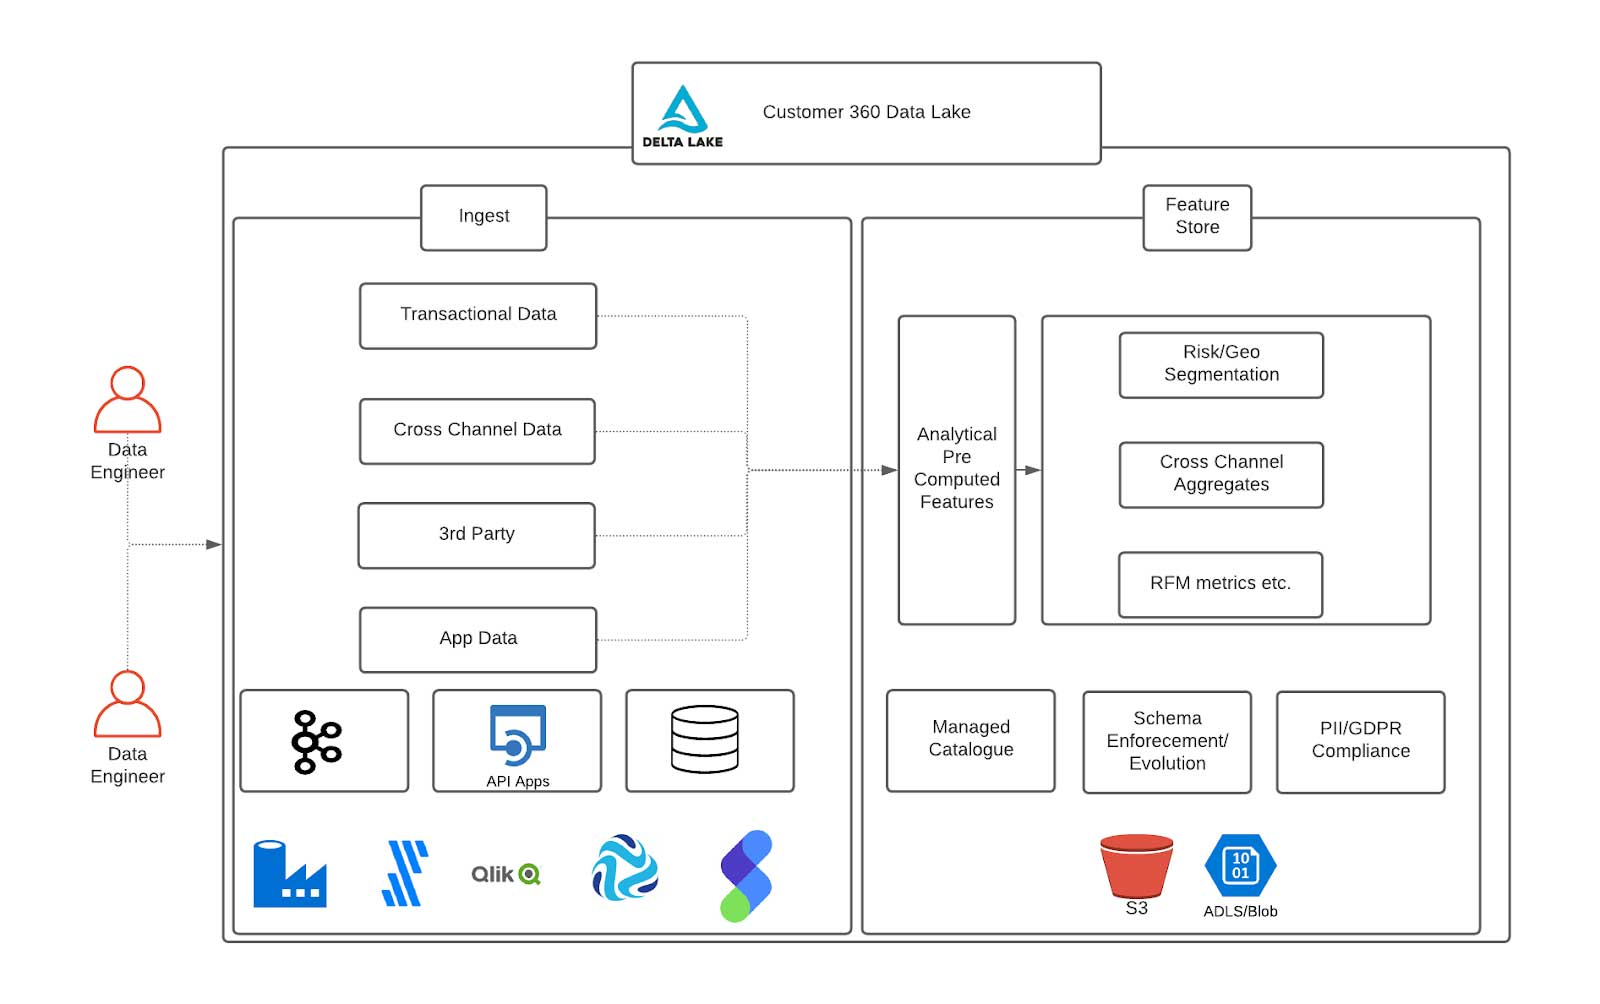 A unified data lake to store and catalog customer data and enable new feature creation at scale